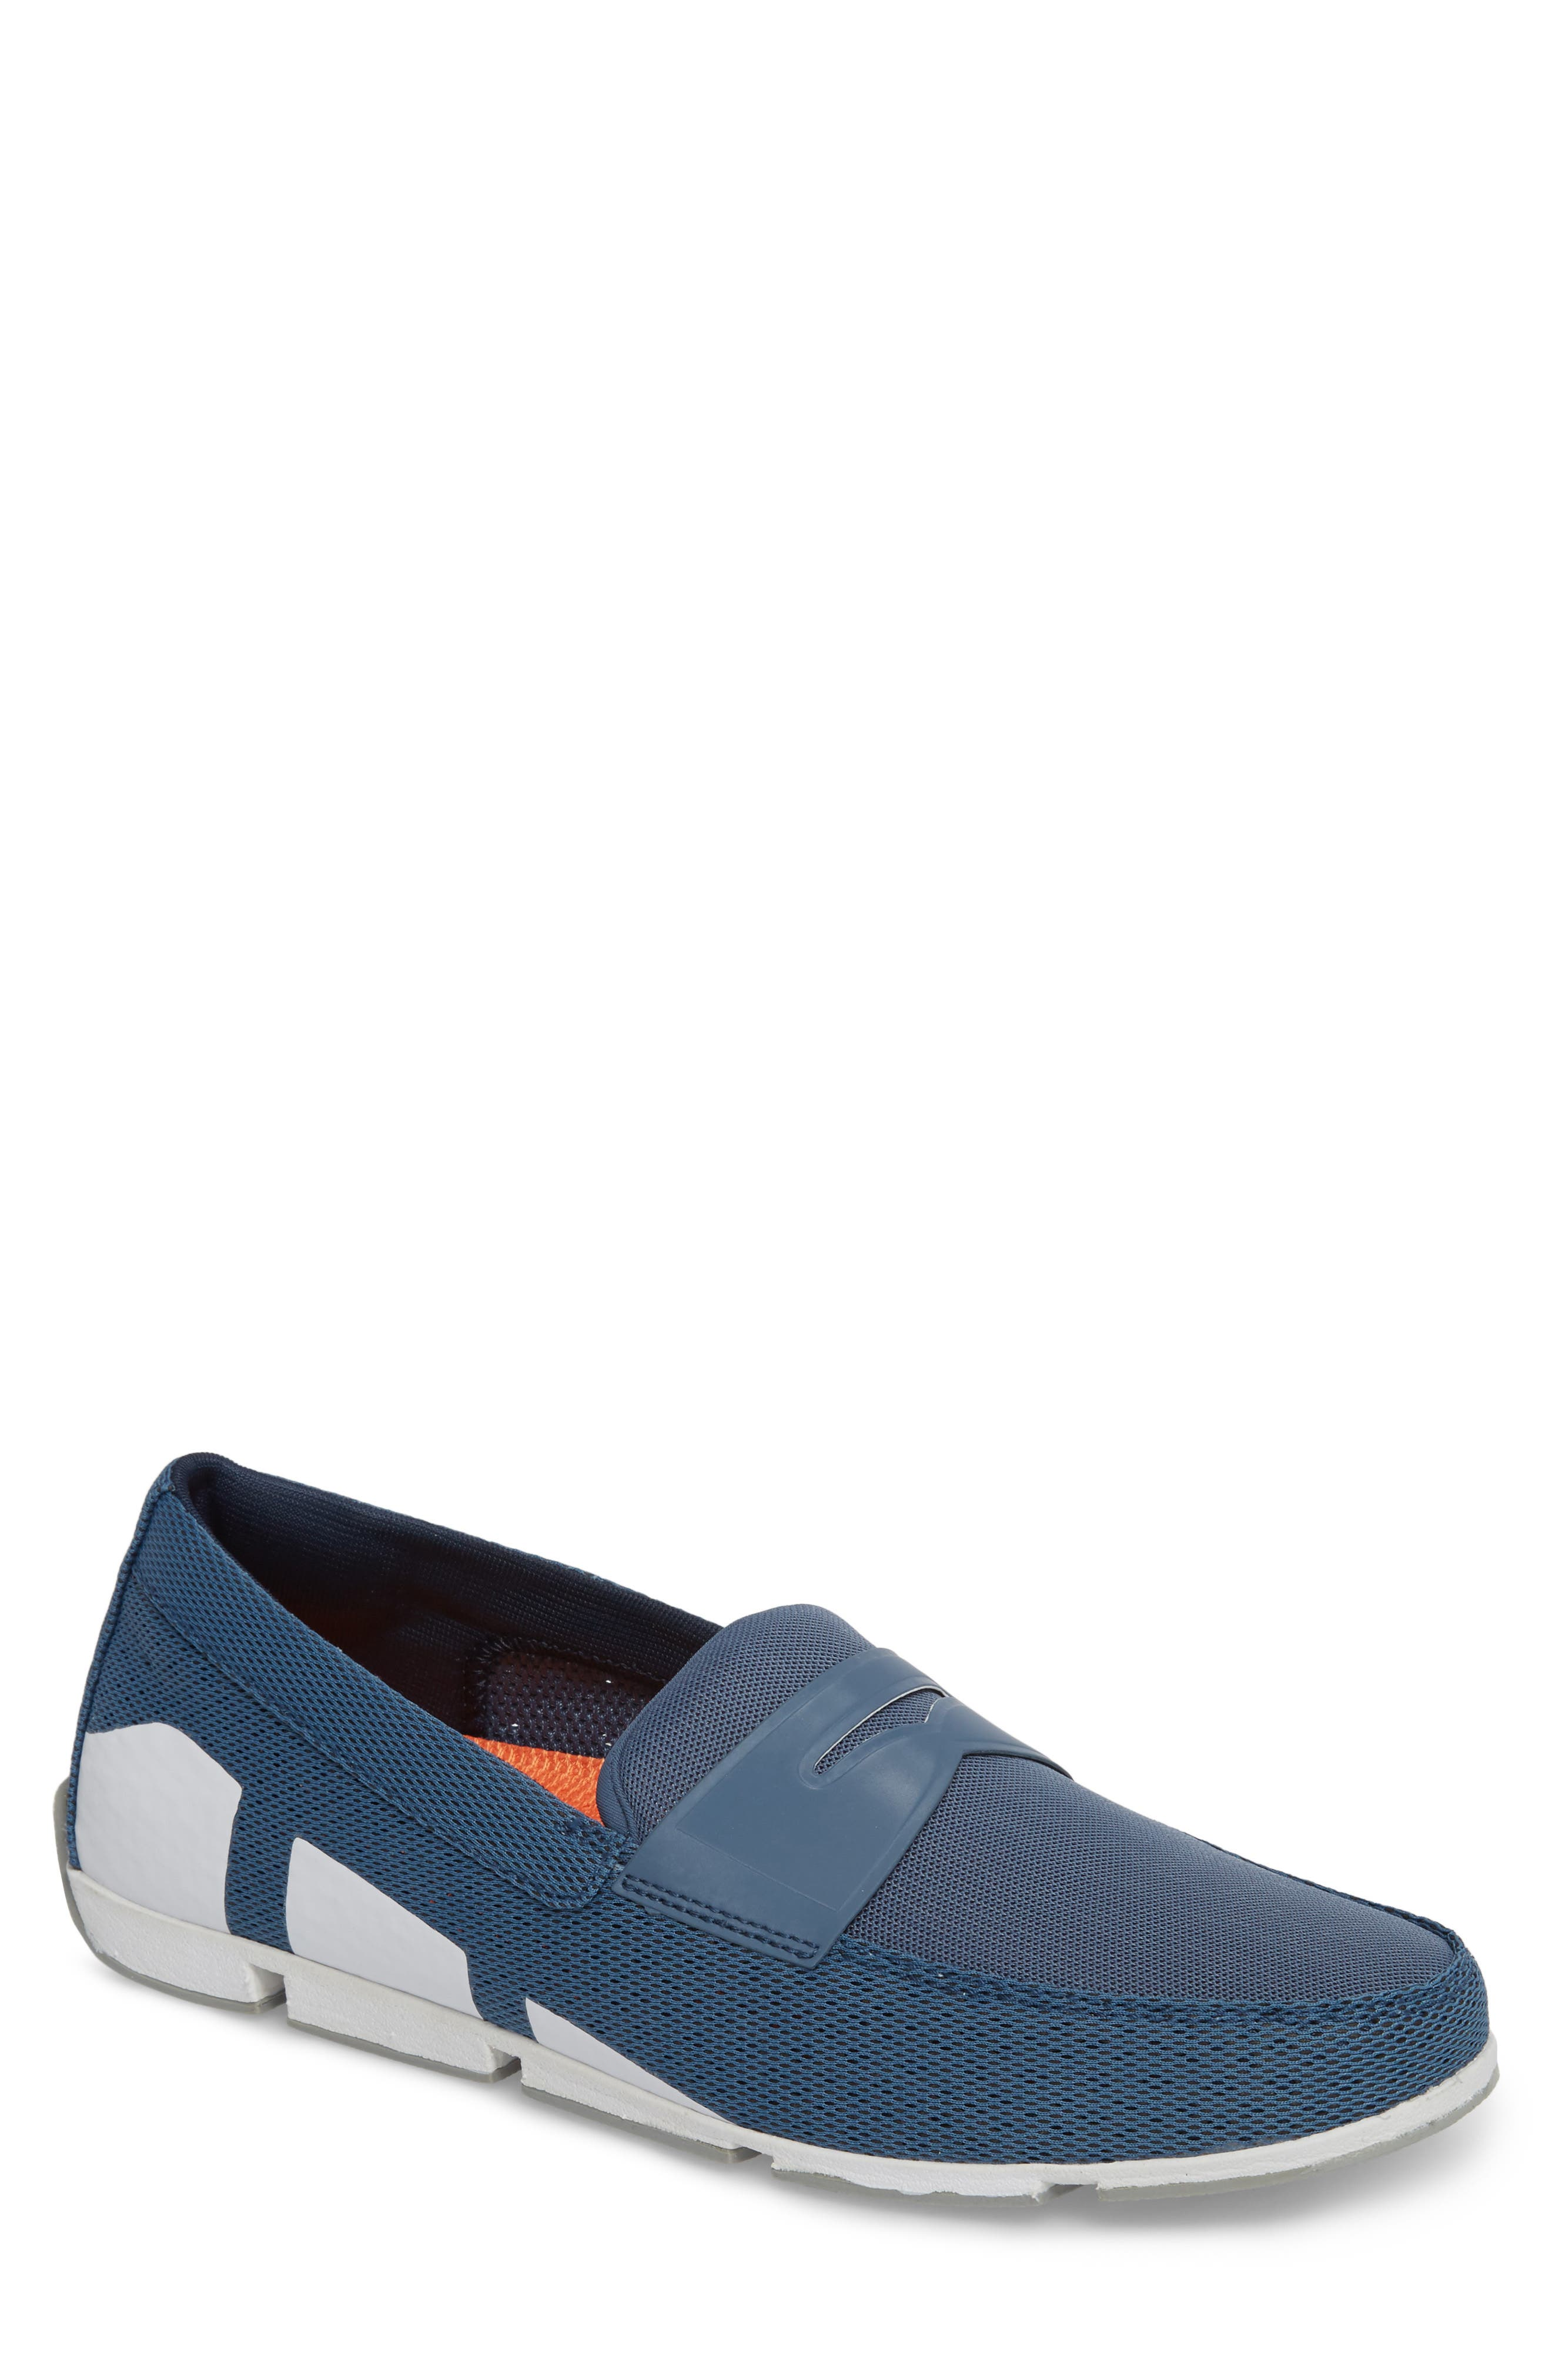 Breeze Penny Loafer,                             Main thumbnail 1, color,                             SLATE/ WHITE/ GREY FABRIC